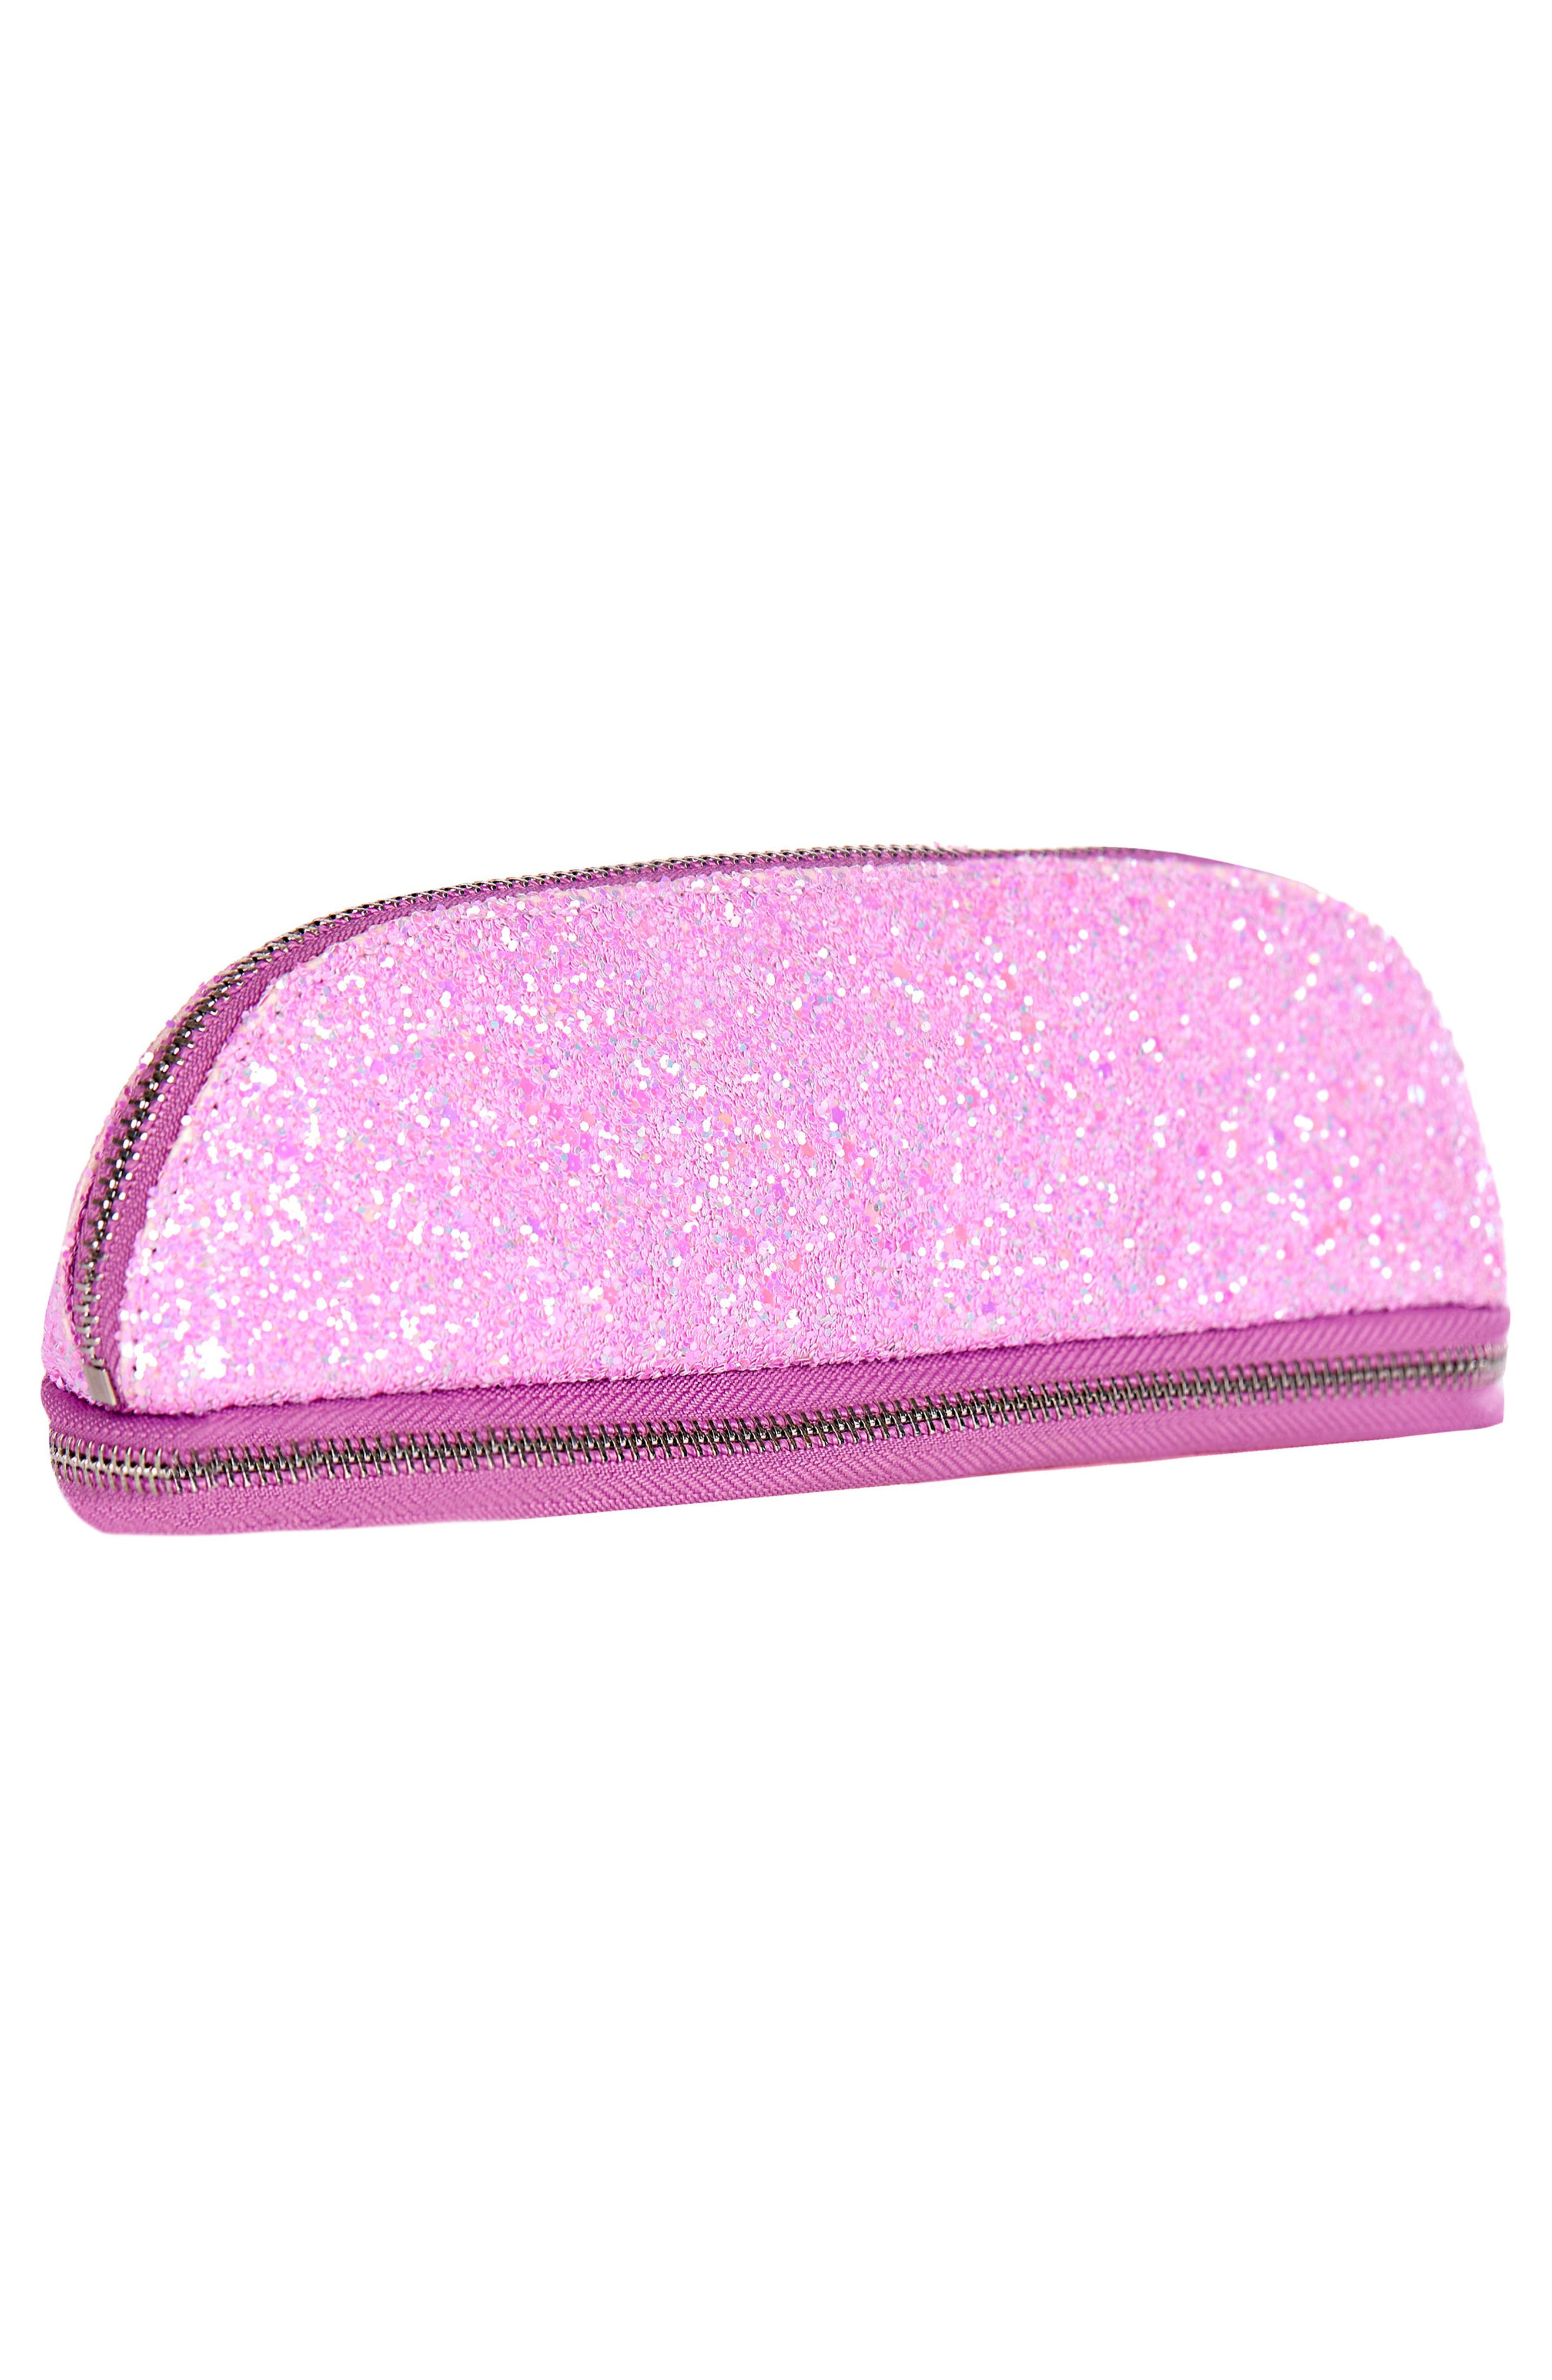 Glitsy Pink Makeup Brush Cosmetics Case,                             Alternate thumbnail 3, color,                             NO COLOR